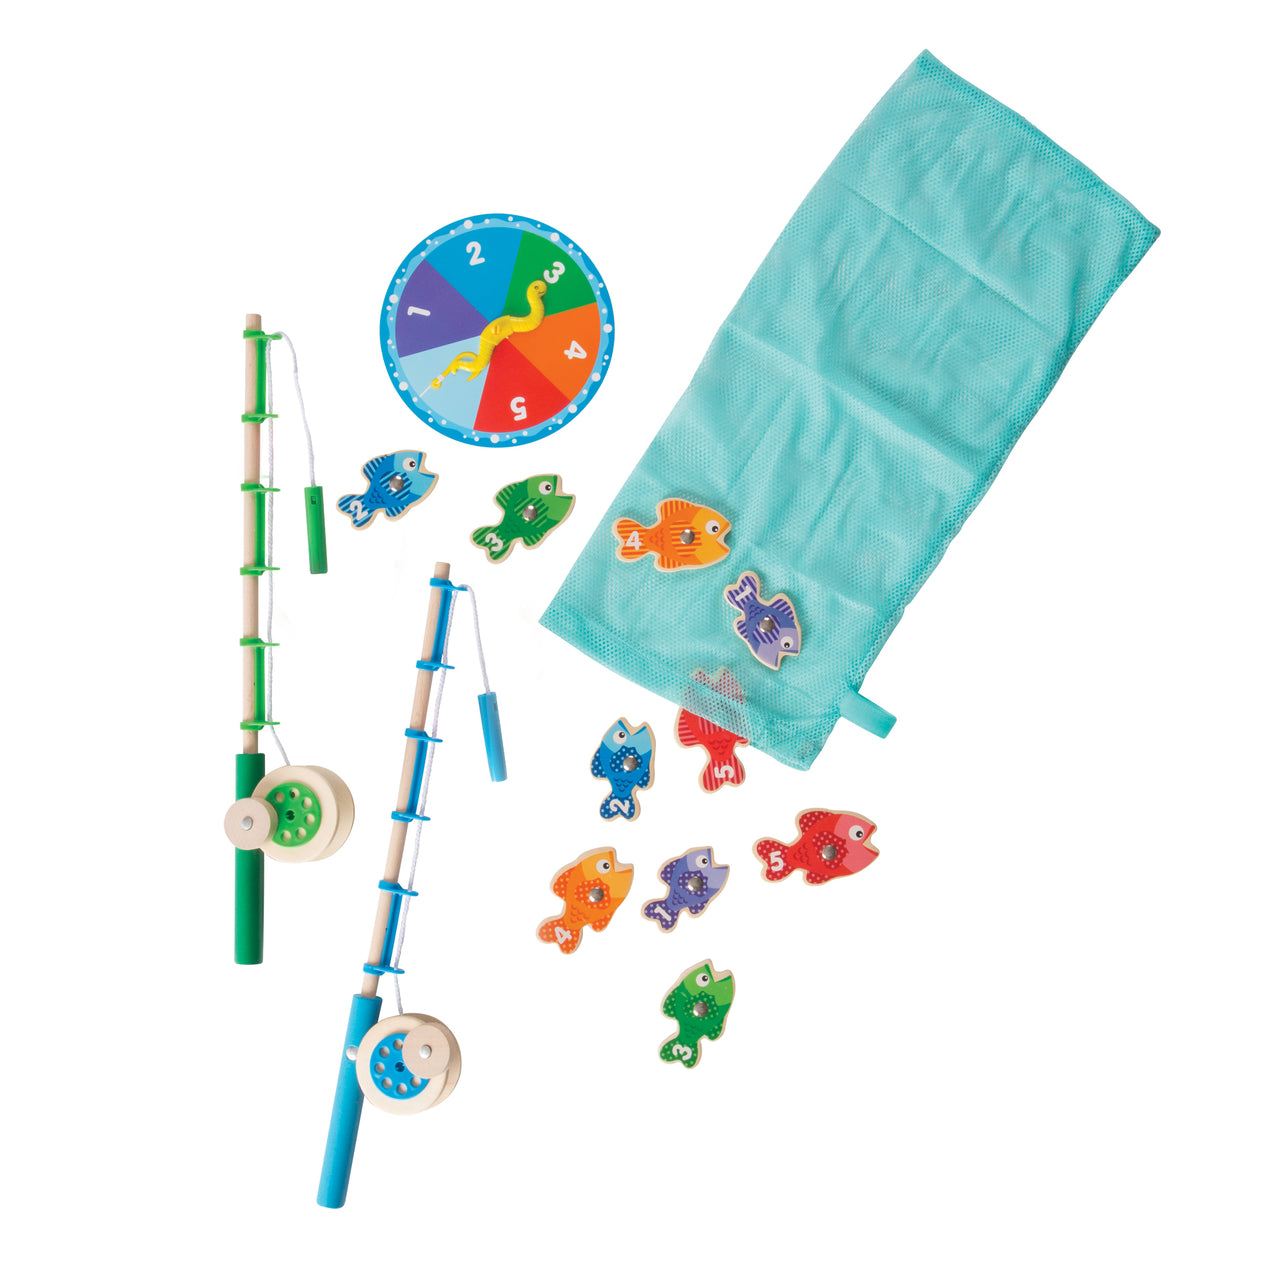 Provide endless hours of fun for your little ones with this Catch and Count Magnetic Fishing Game from Melissa and Doug! The 10 magnetic fish are numbered and patterned to enrich matching, sorting, and counting activities, and two wooden rods. Includes working wind-up rod and reel.